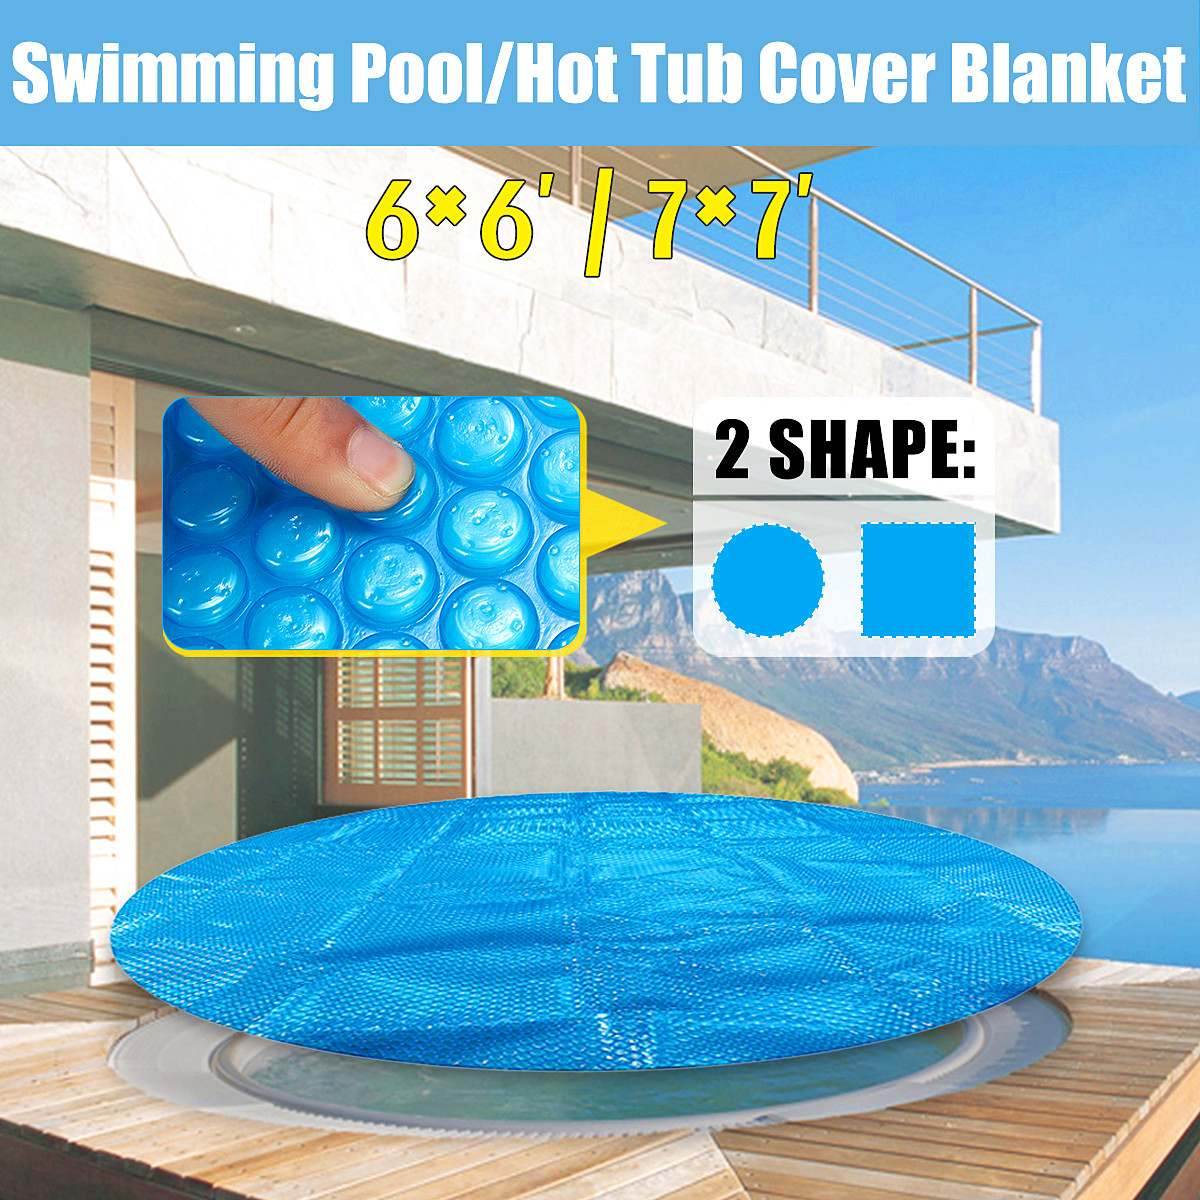 6ft/7ft Round/Square Swimming Pool Spa Hot Tub Cover 400m Solar Thermal  Blanket New Arrival-in Pool & Accessories from Sports & Entertainment on ...